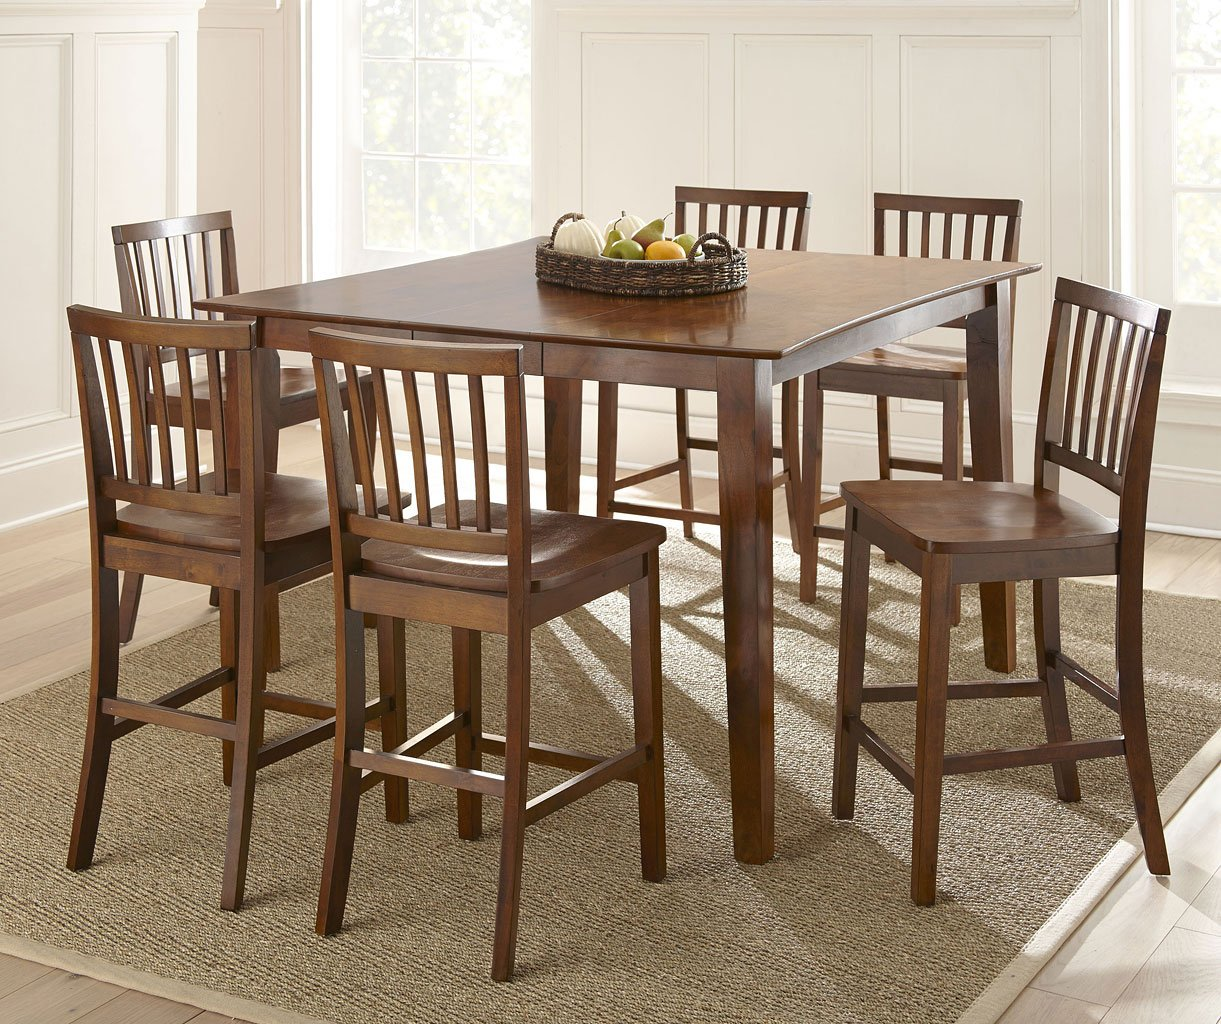 Counter Dining Room Sets: Branson Counter Dining Room Set Steve Silver Furniture